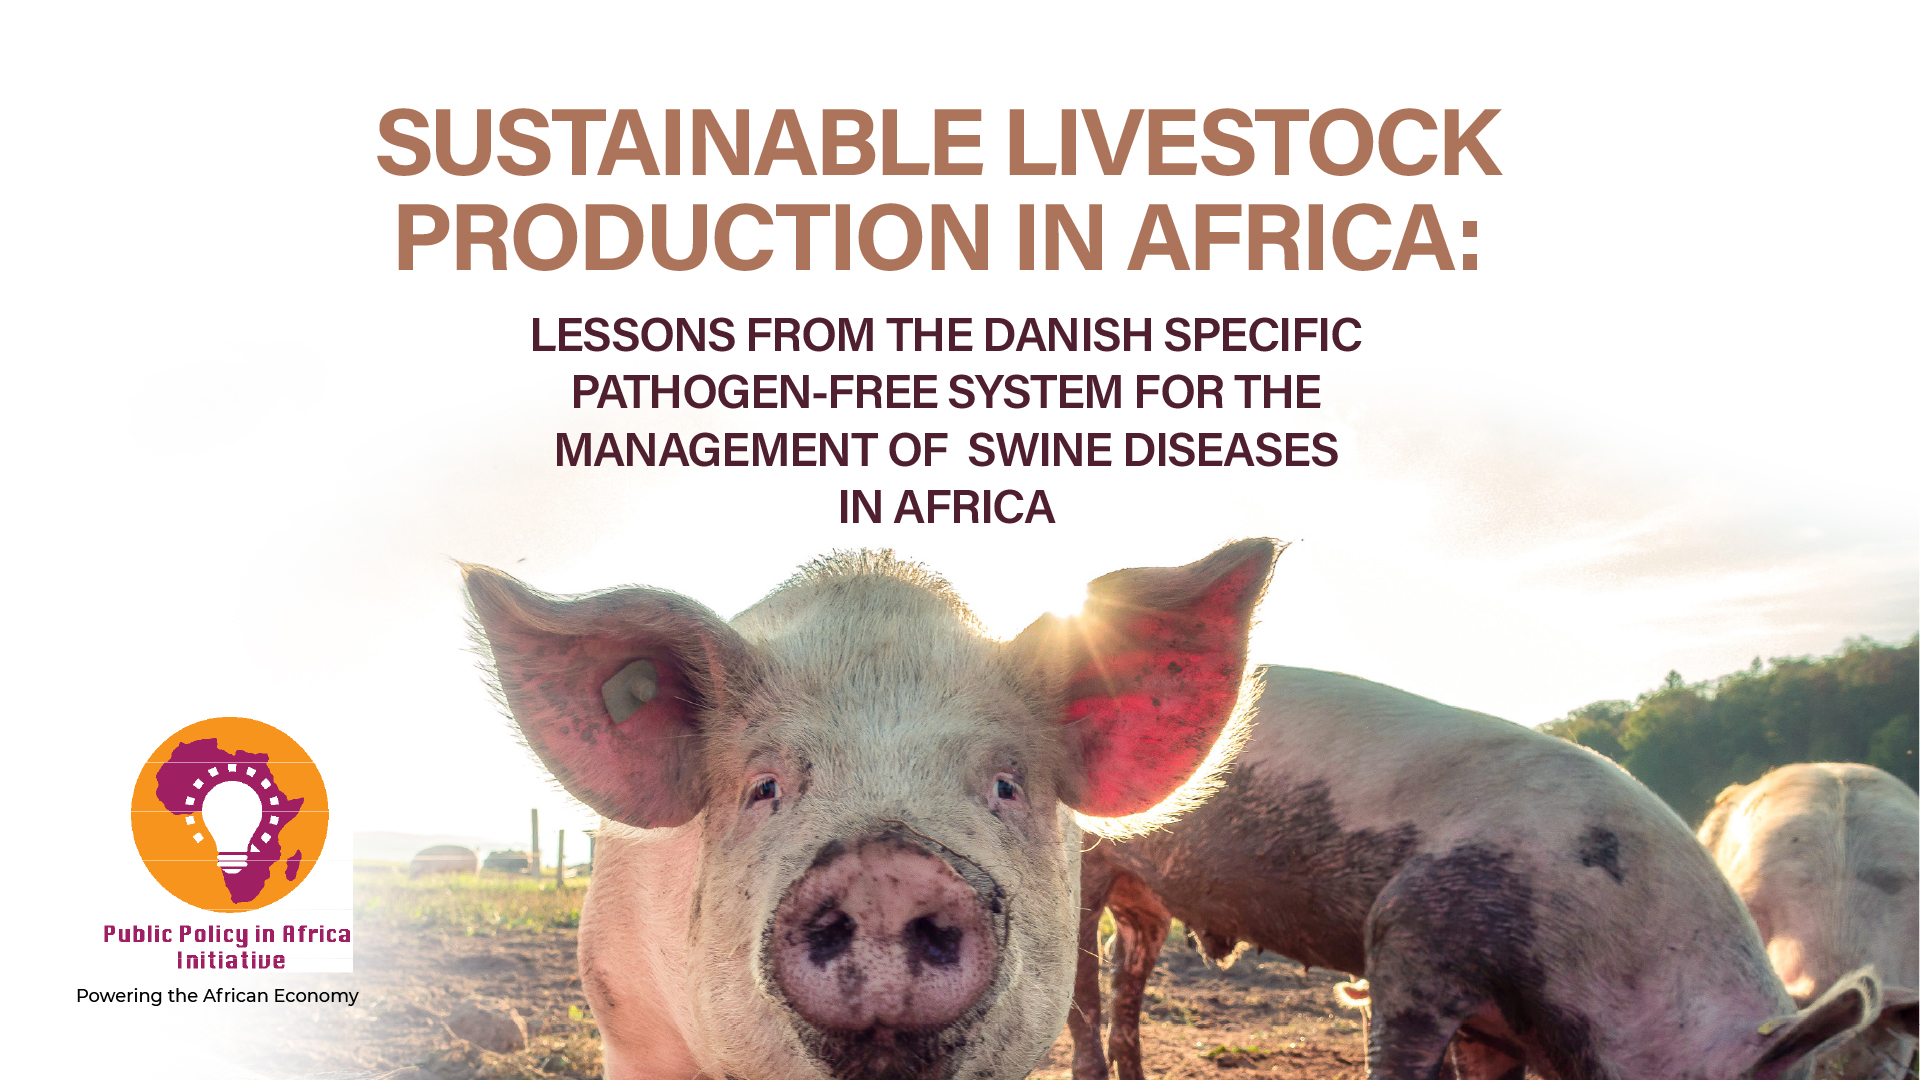 Sustainable Livestock Production In Africa: Lessons From The Danish Specific Pathogen-free System For The Management Of Swine Diseases In Africa